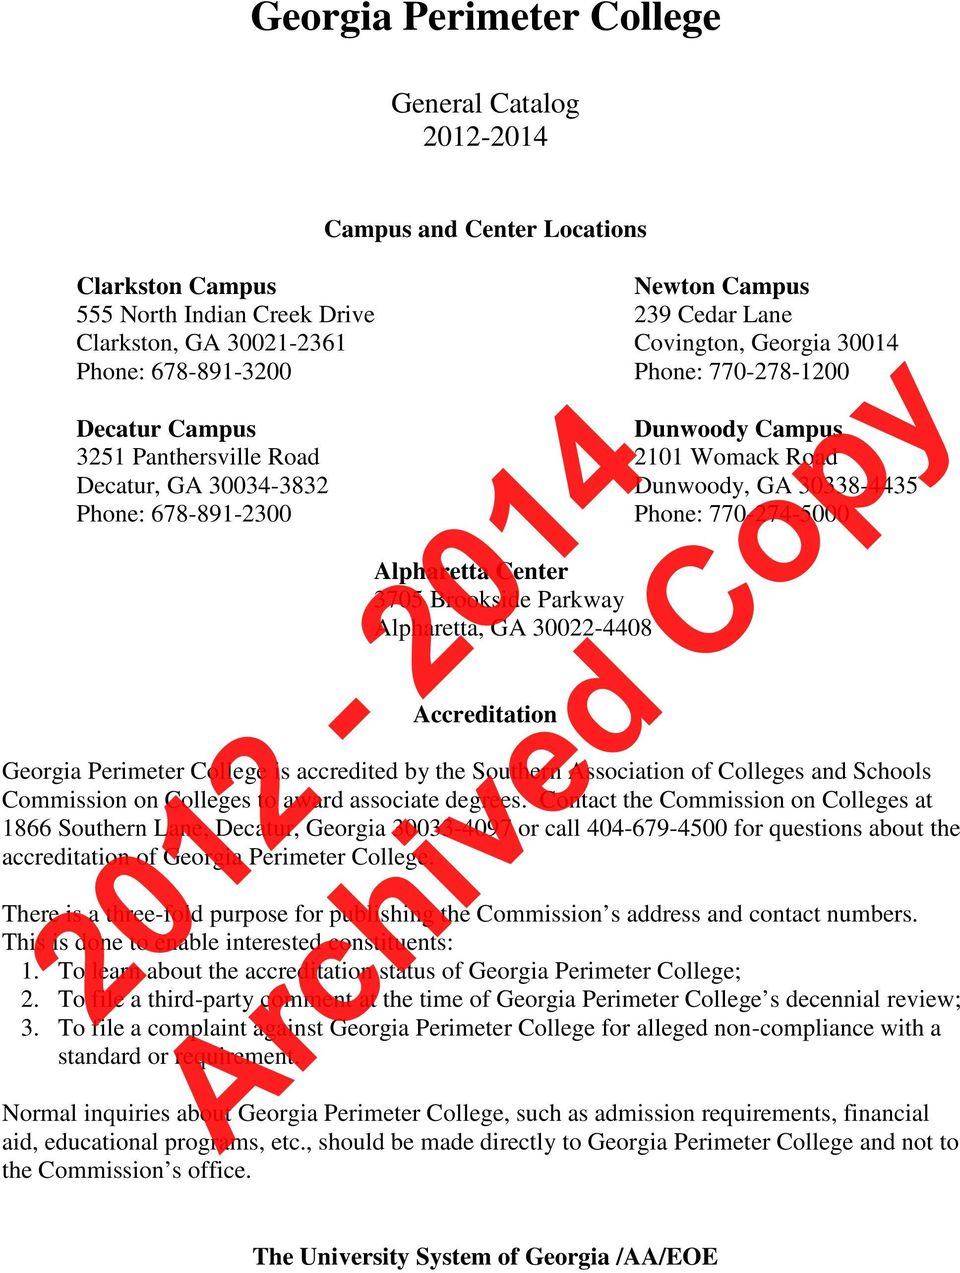 770-274-5000 Alpharetta Center 3705 Brookside Parkway Alpharetta, GA 30022-4408 Accreditation Georgia Perimeter College is accredited by the Southern Association of Colleges and Schools Commission on